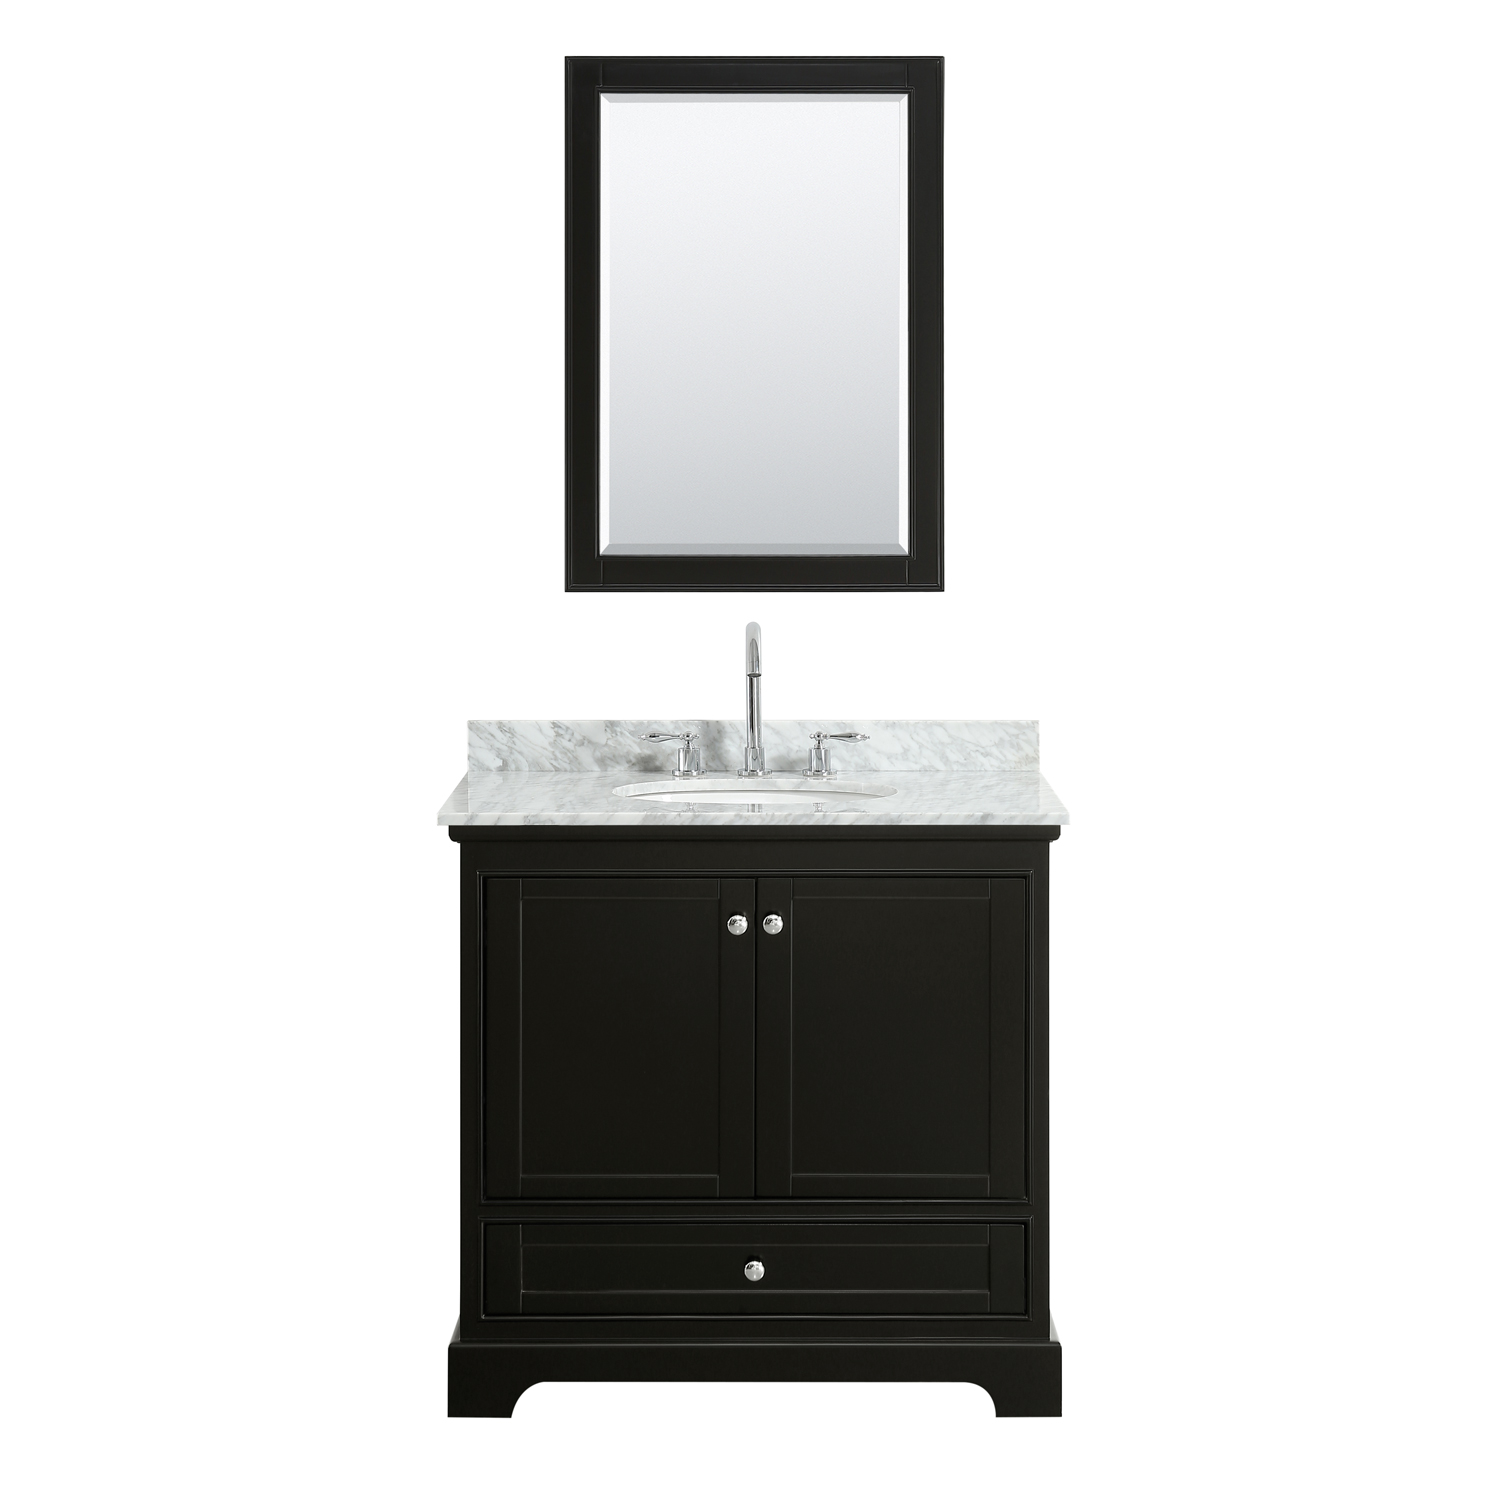 "36"" Single Bathroom Vanity in White Carrara Marble Countertop with Undermount Porcelain Sink, Medicine Cabinet, Mirror and Color Options"